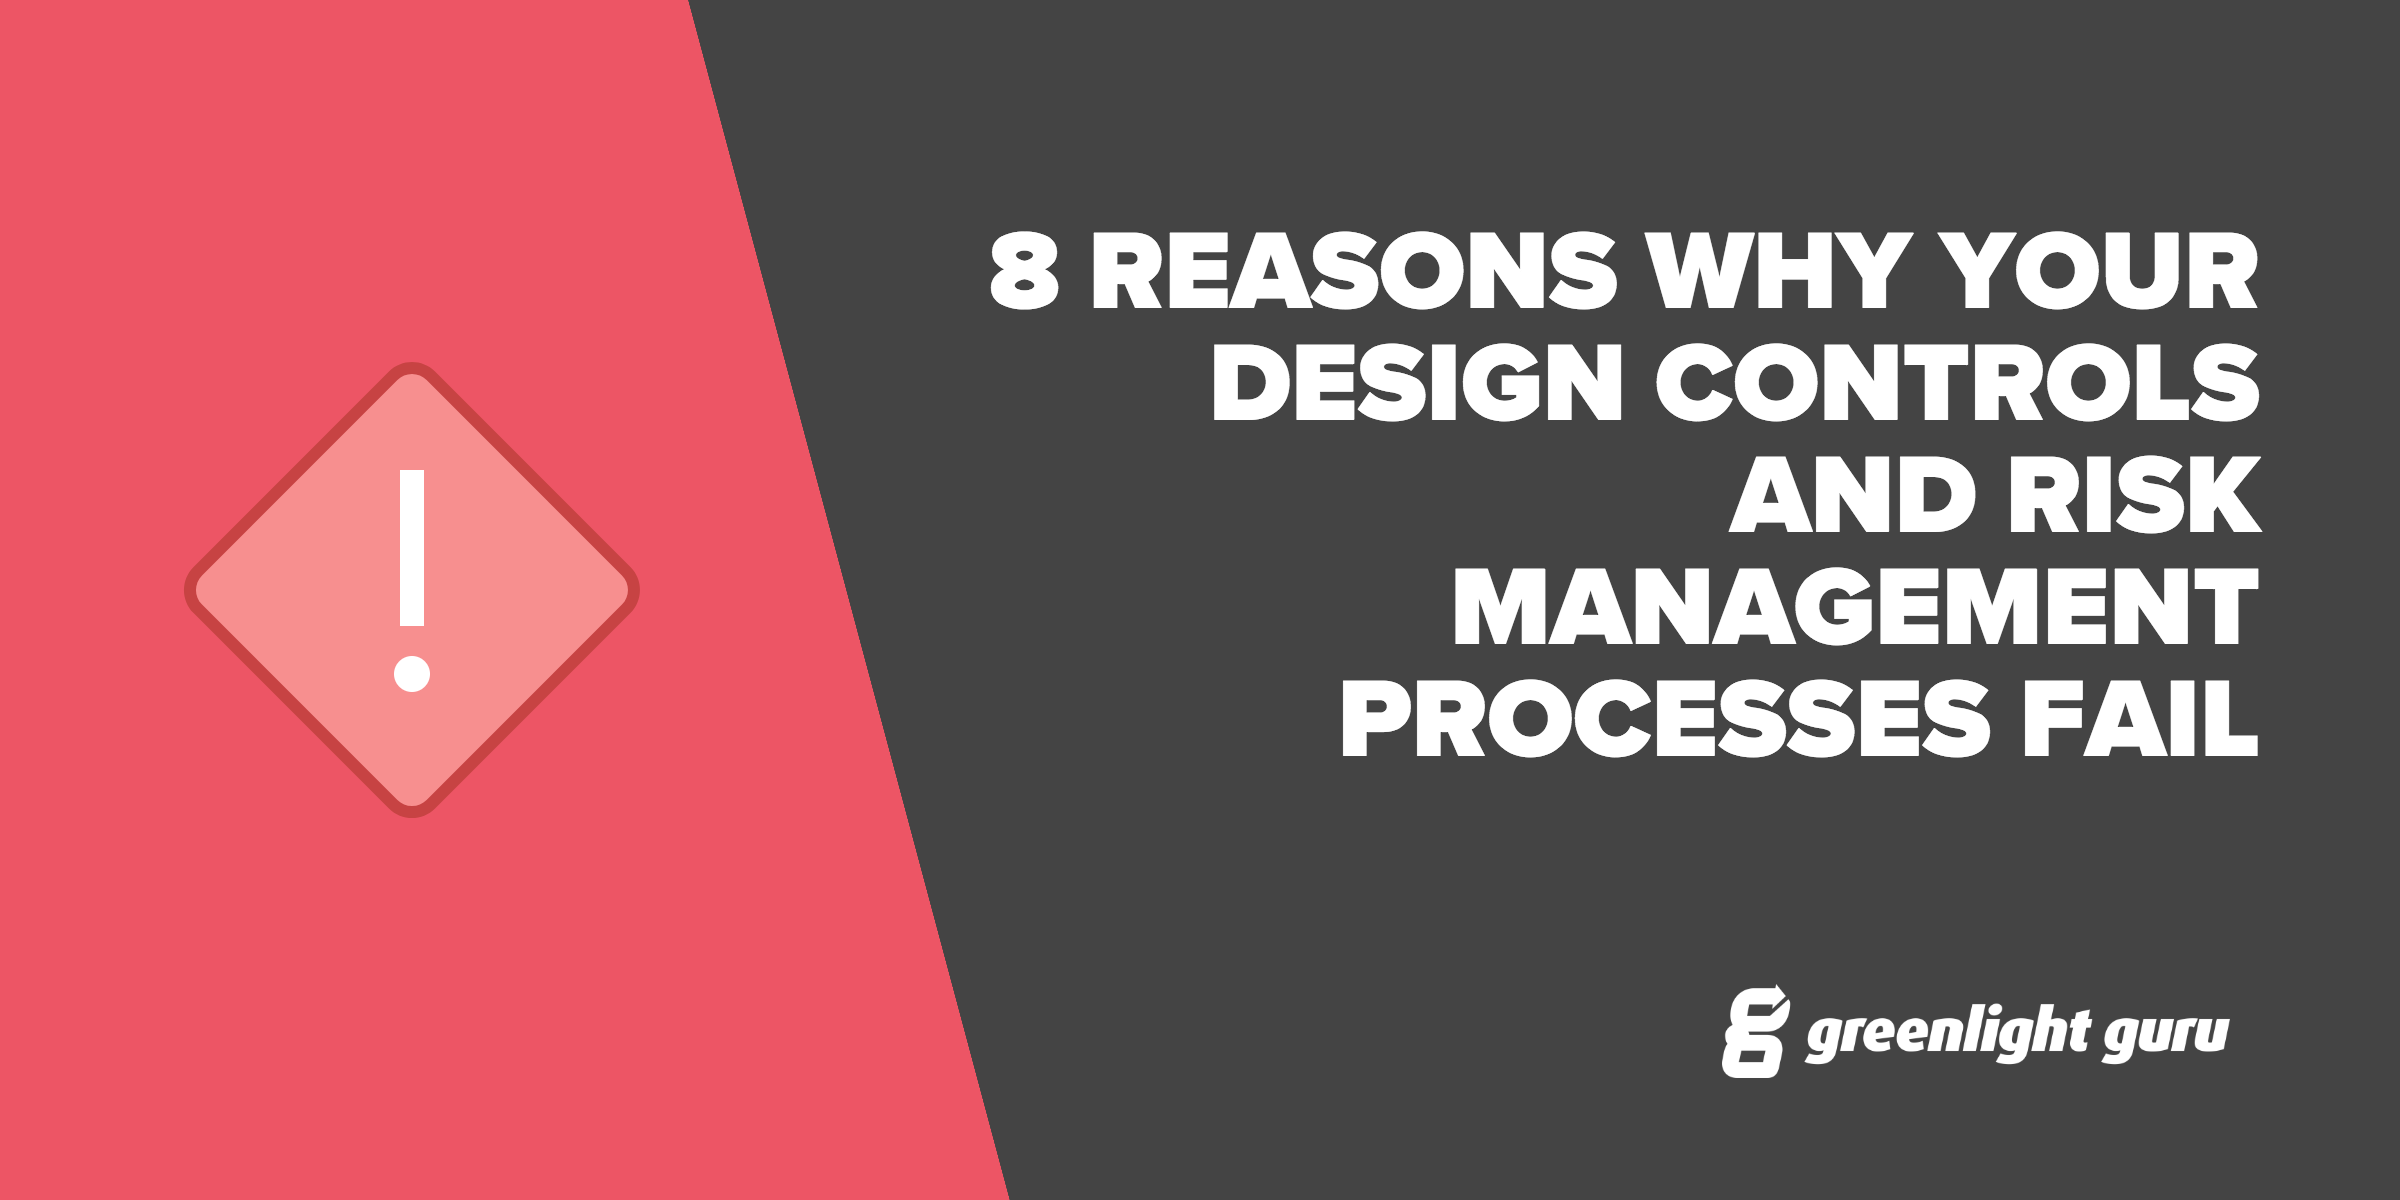 8 Reasons Why Your Design Controls And Risk Management Processes Fail - Featured Image